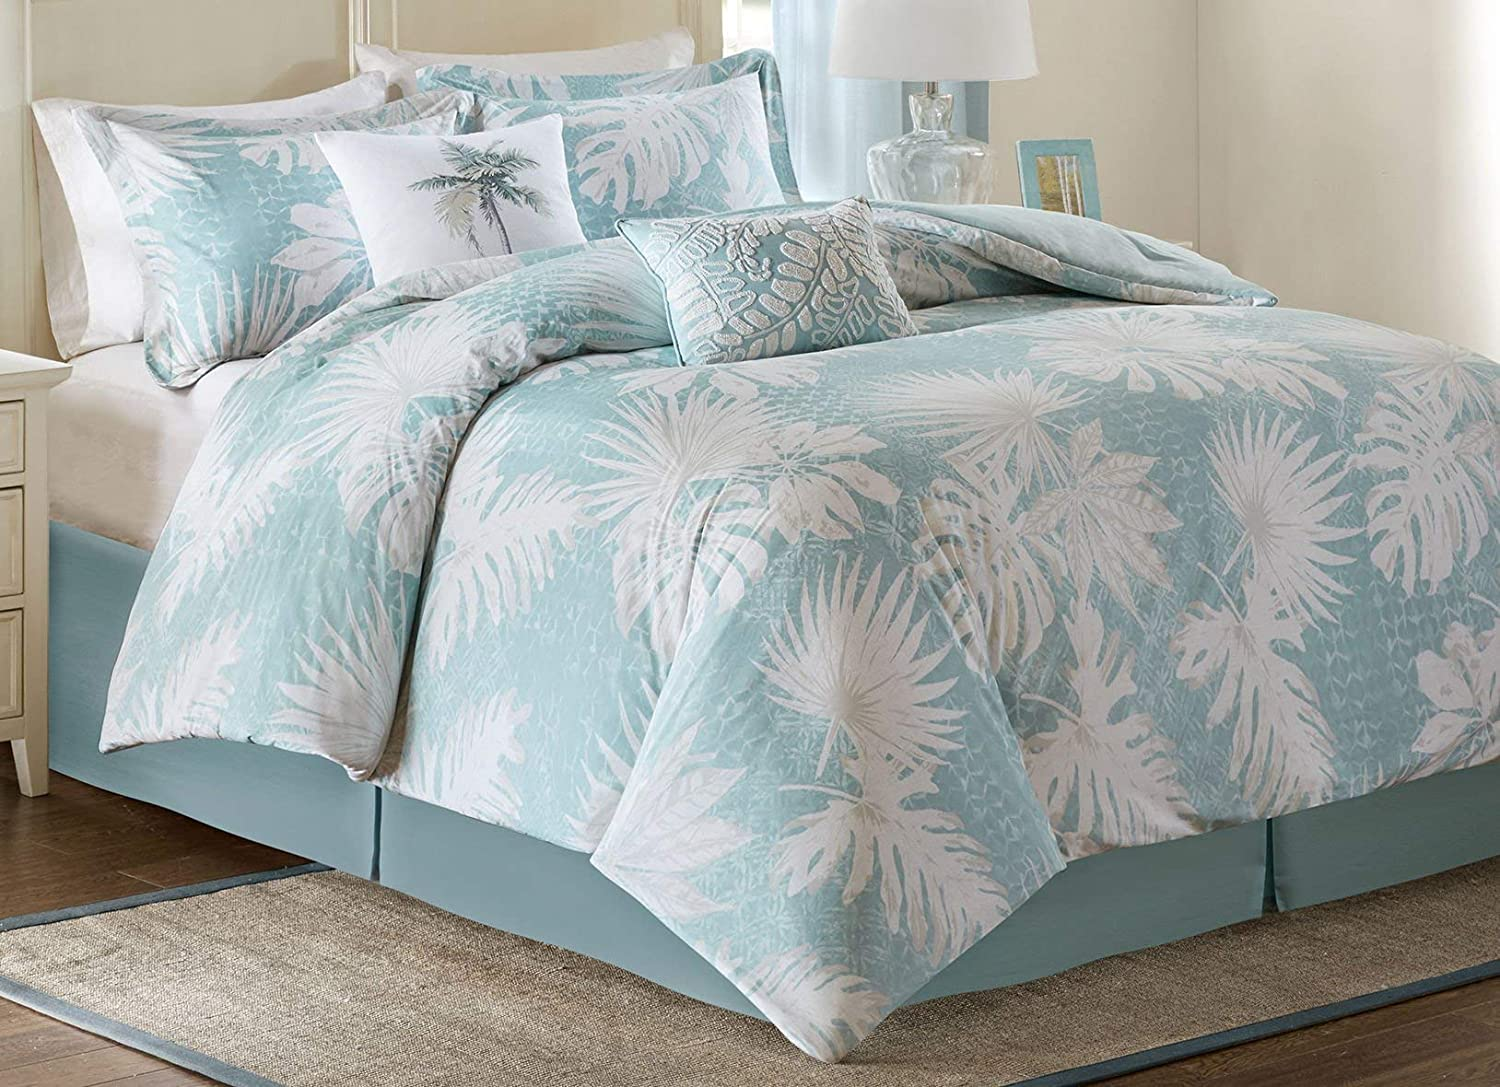 Harbor House Palm Grove Queen Size Bed Comforter Set - Aqua, Tropical Palm Tree Leaf Floral – 5 Pieces Bedding Sets – Cotton Sateen Bedroom Comforters